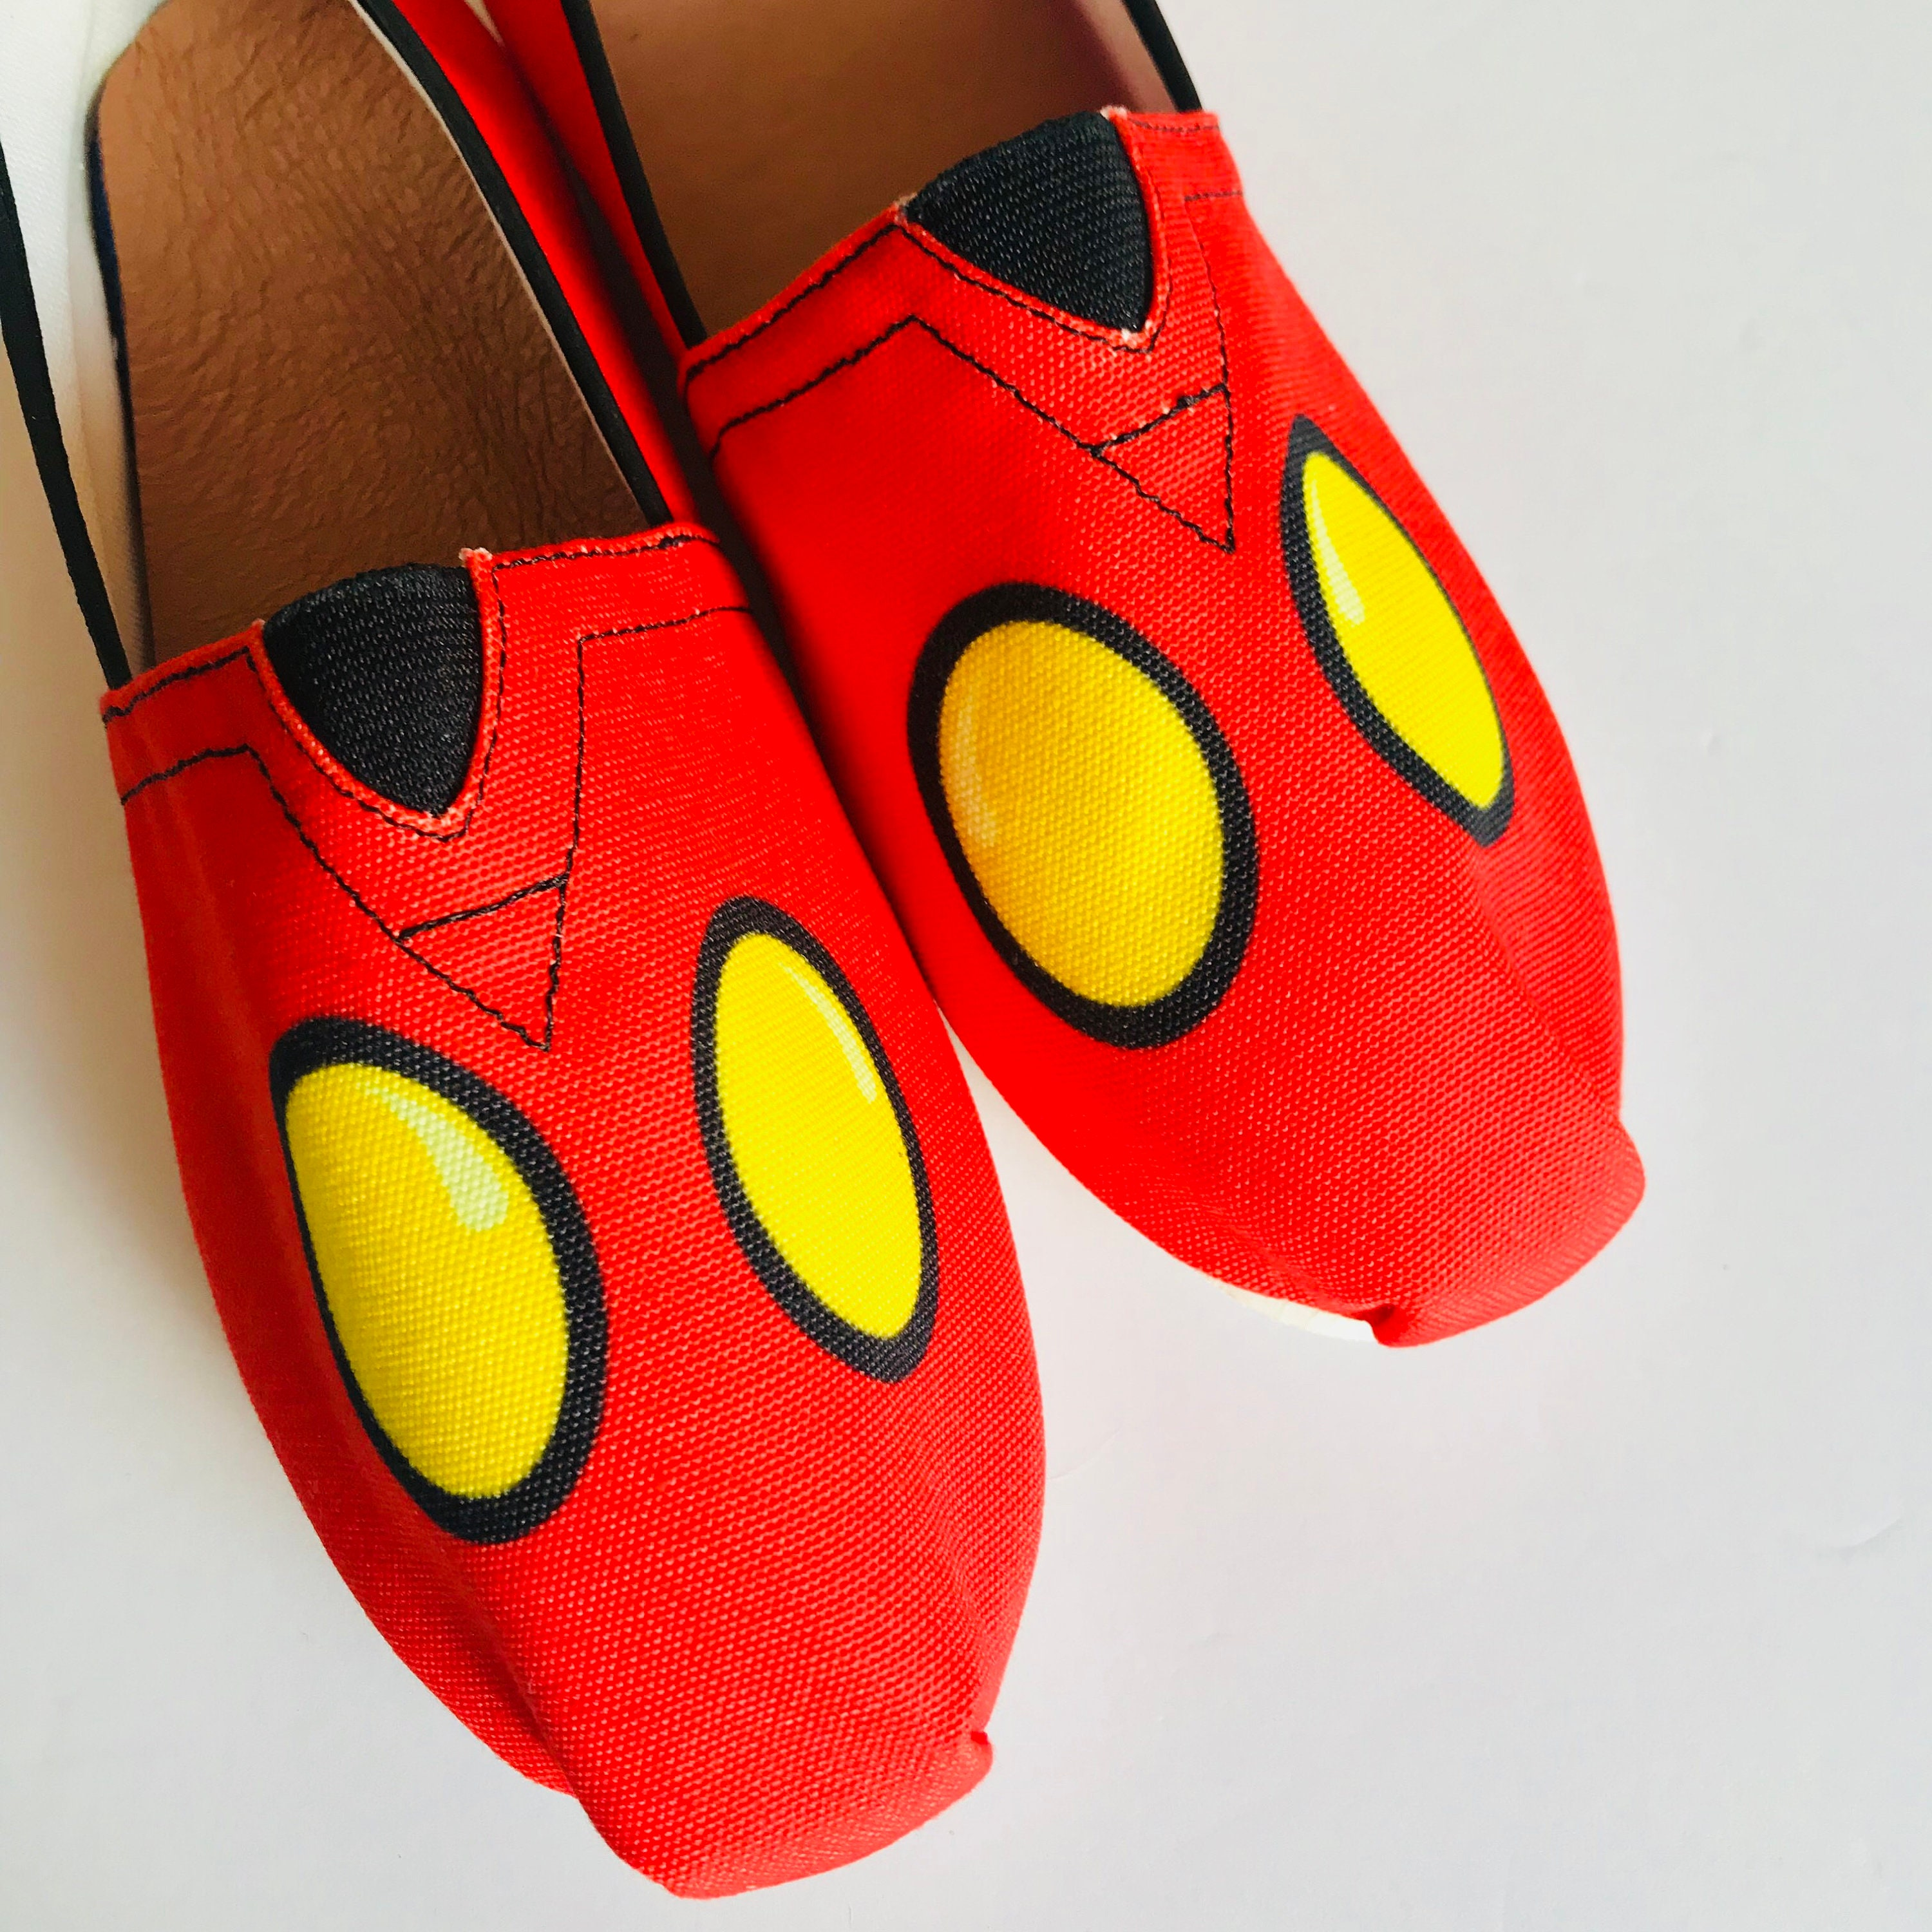 Mickey Shorts Shoes | Mickey Mickey Mouse Shoes | Mickey | Shoes | Disney Shoes | Disneyland Shoes | Disney World Shoes | Disney Slip On Shoes 4bc29d